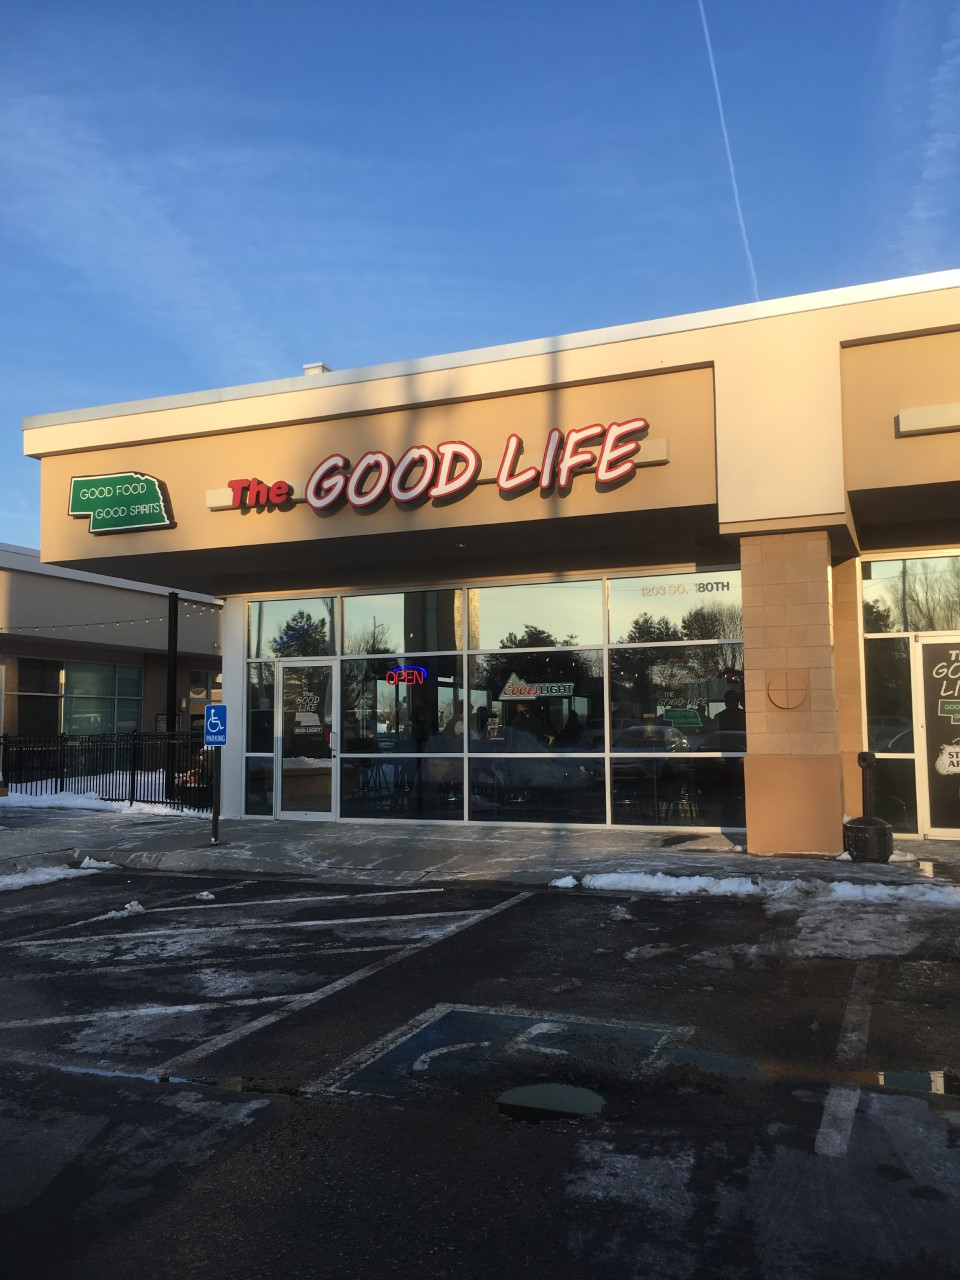 The Good Life is located in Omaha at 1203 S 108th St. It opens everyday from 11am to 2am.